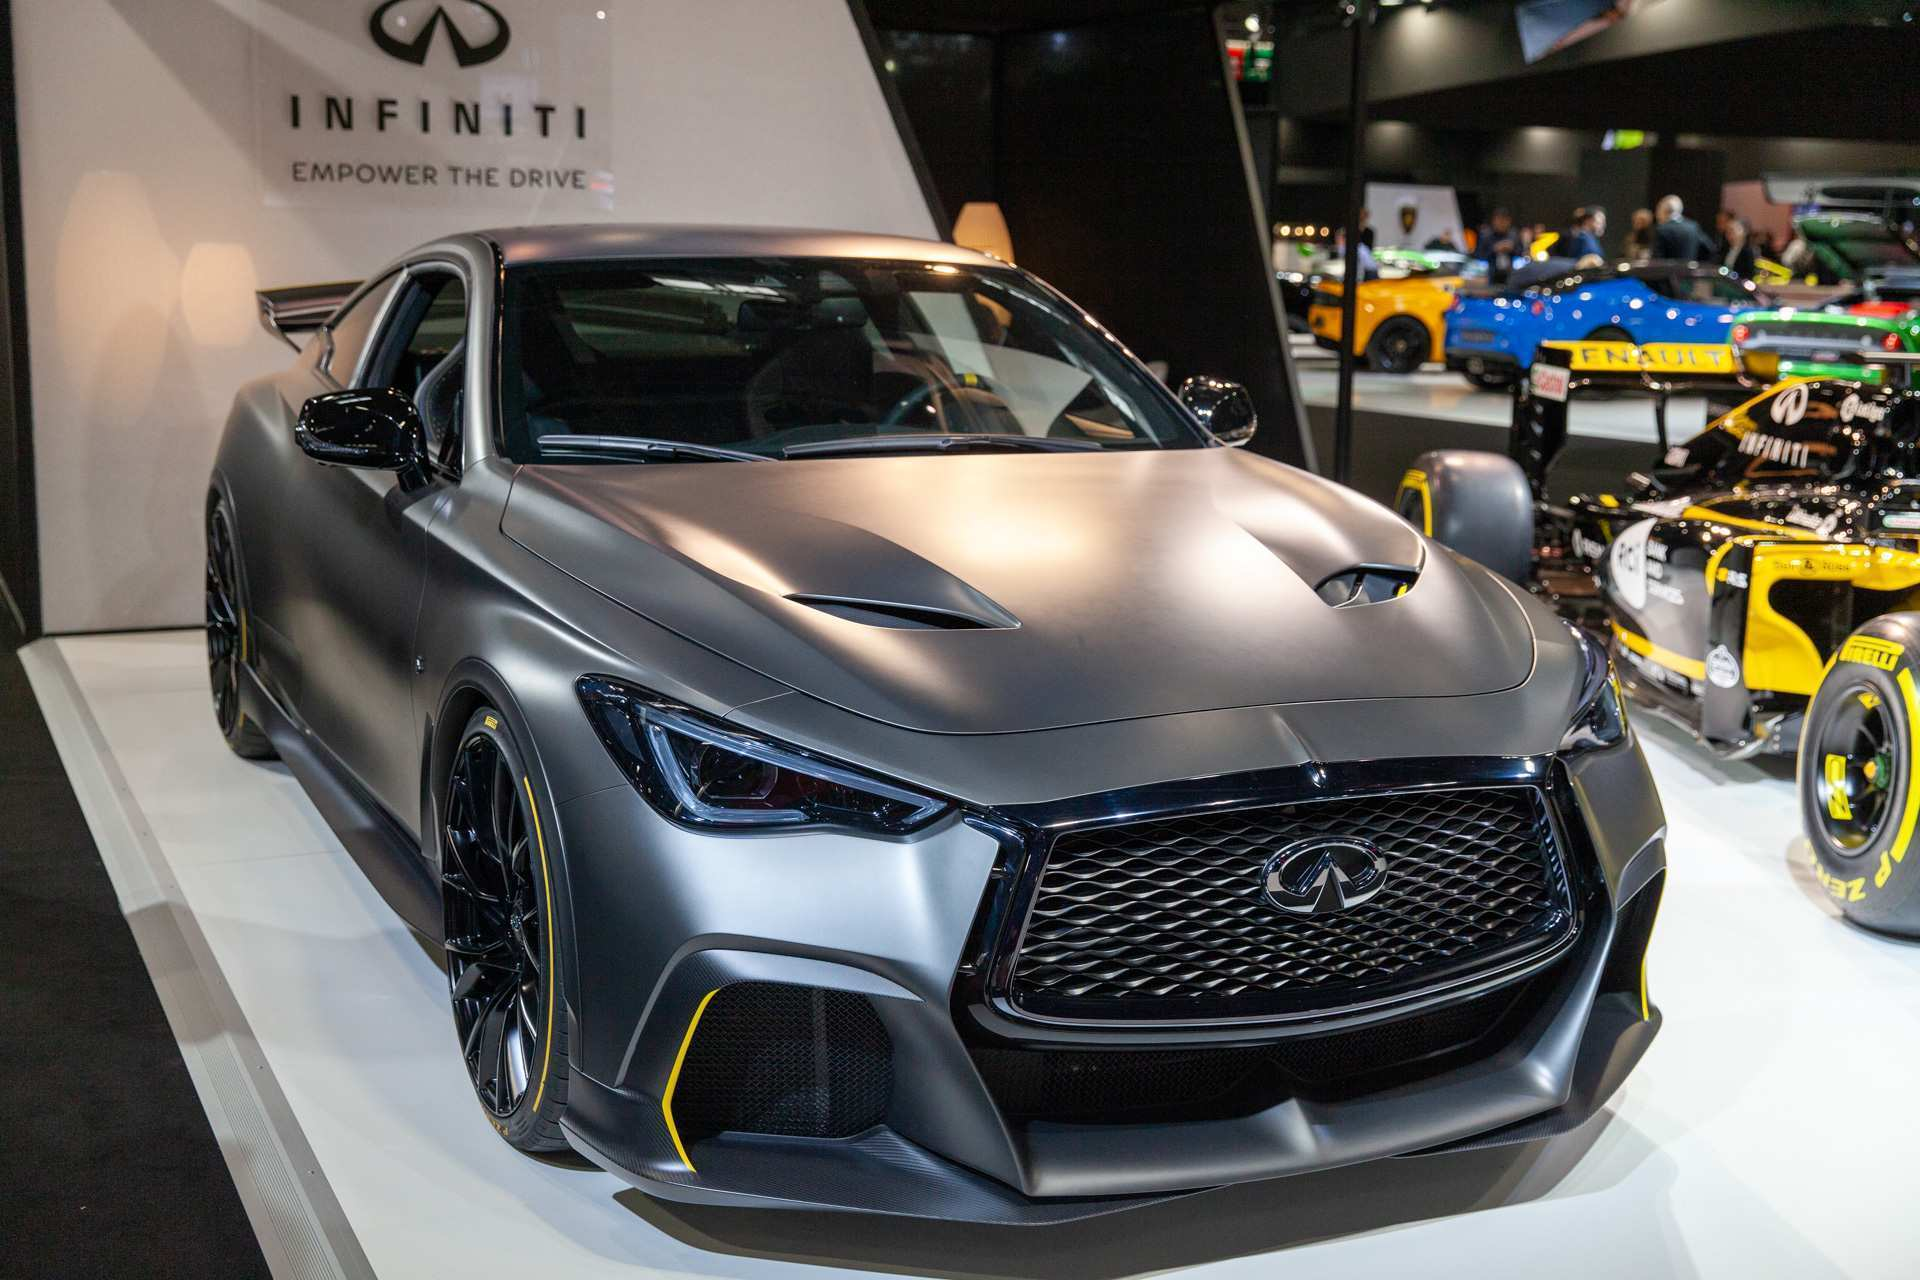 65 All New 2020 Infiniti Q60 Coupe Release Date